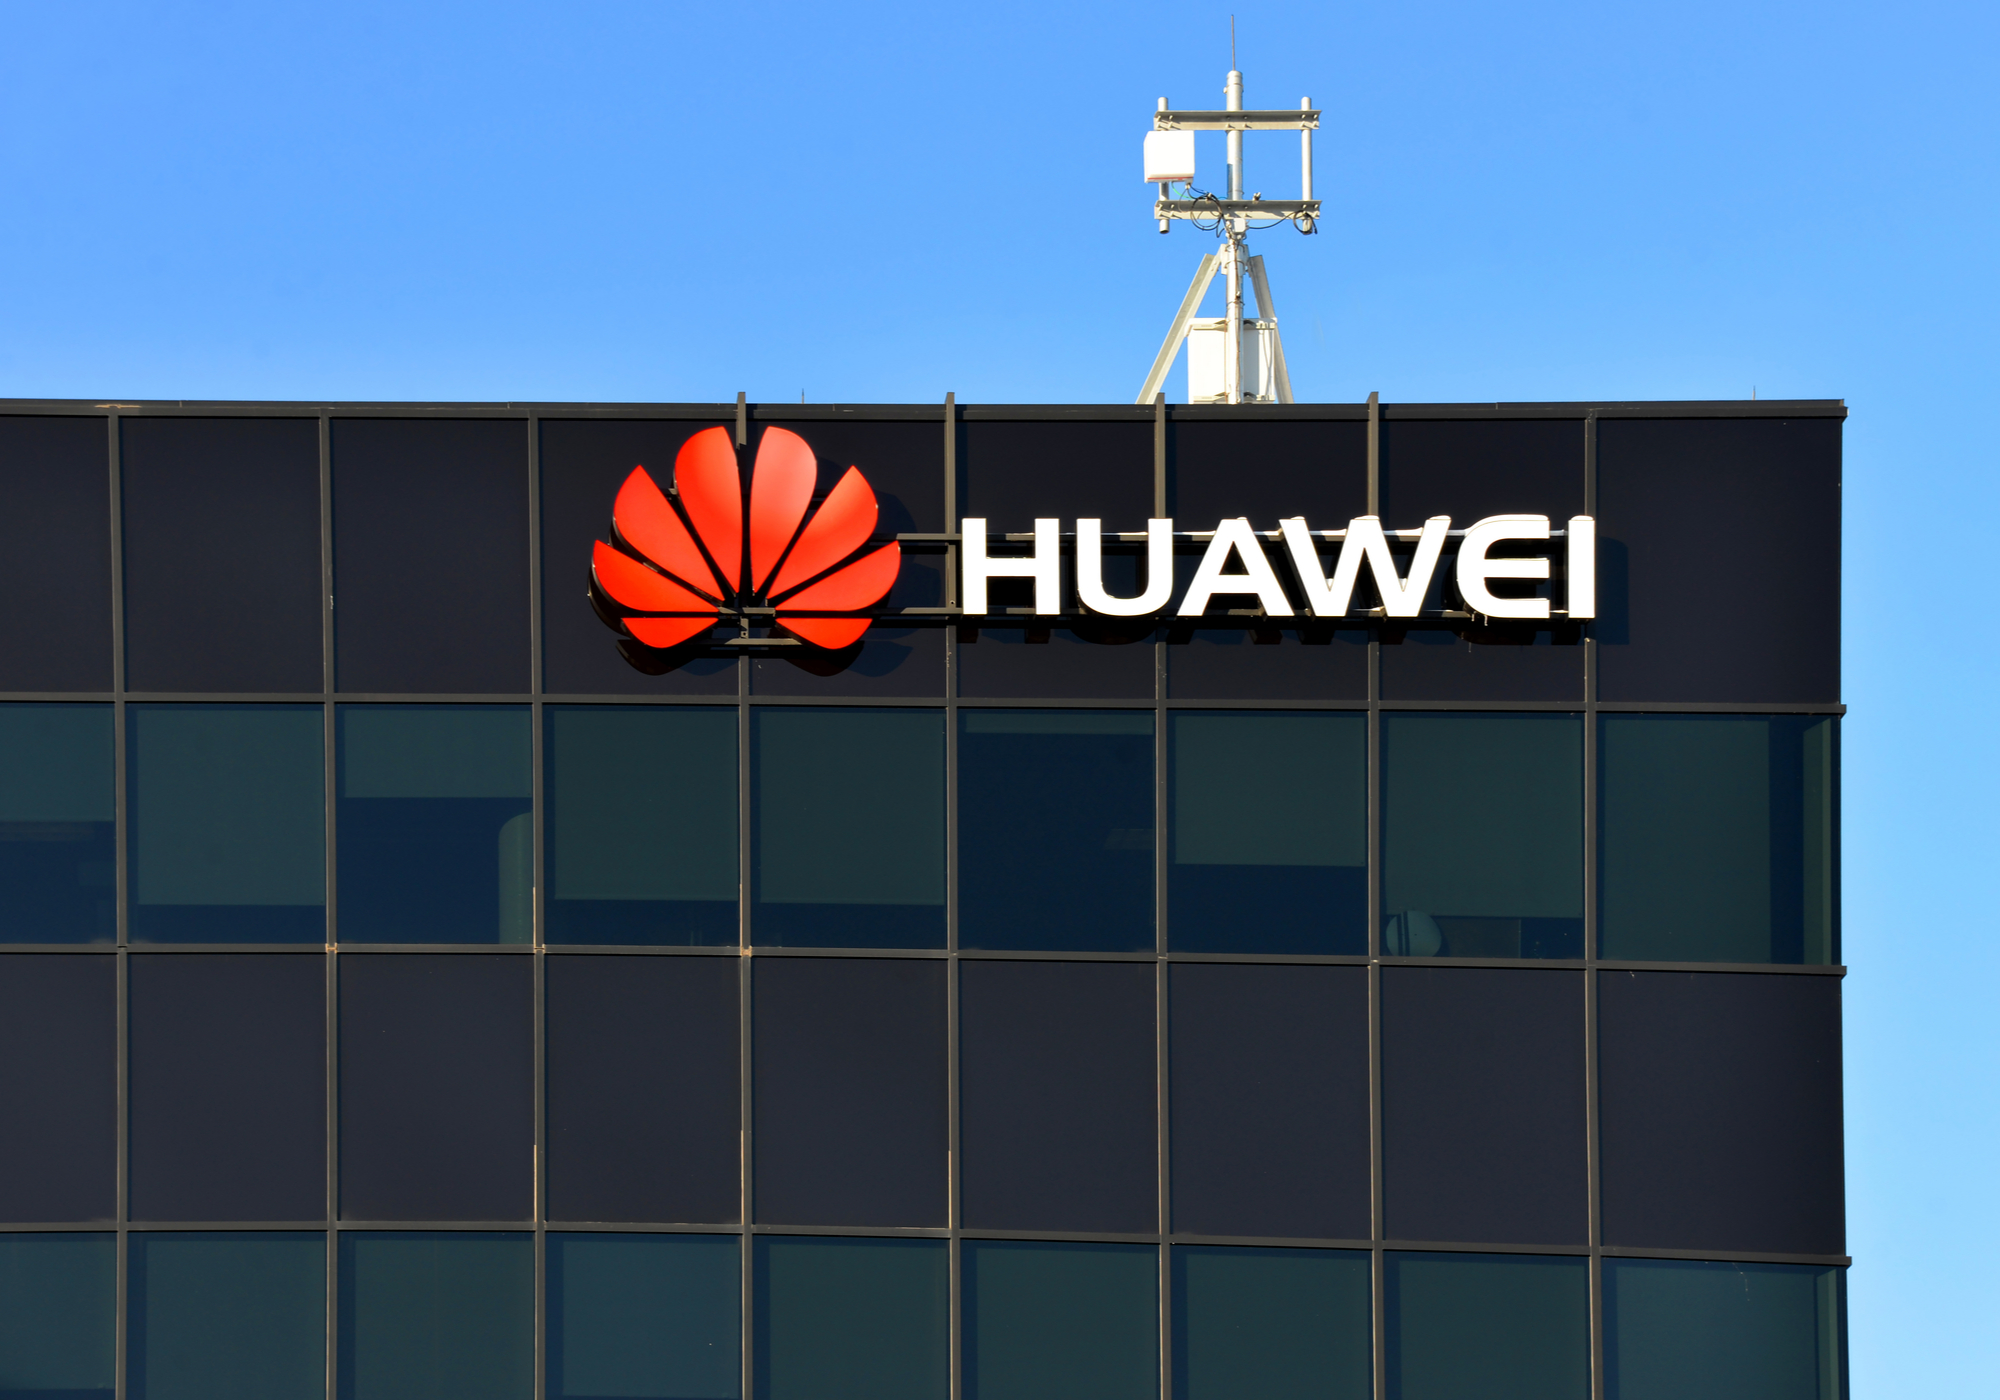 Huawei asks UK for more time to assess impact of US chip sanctions